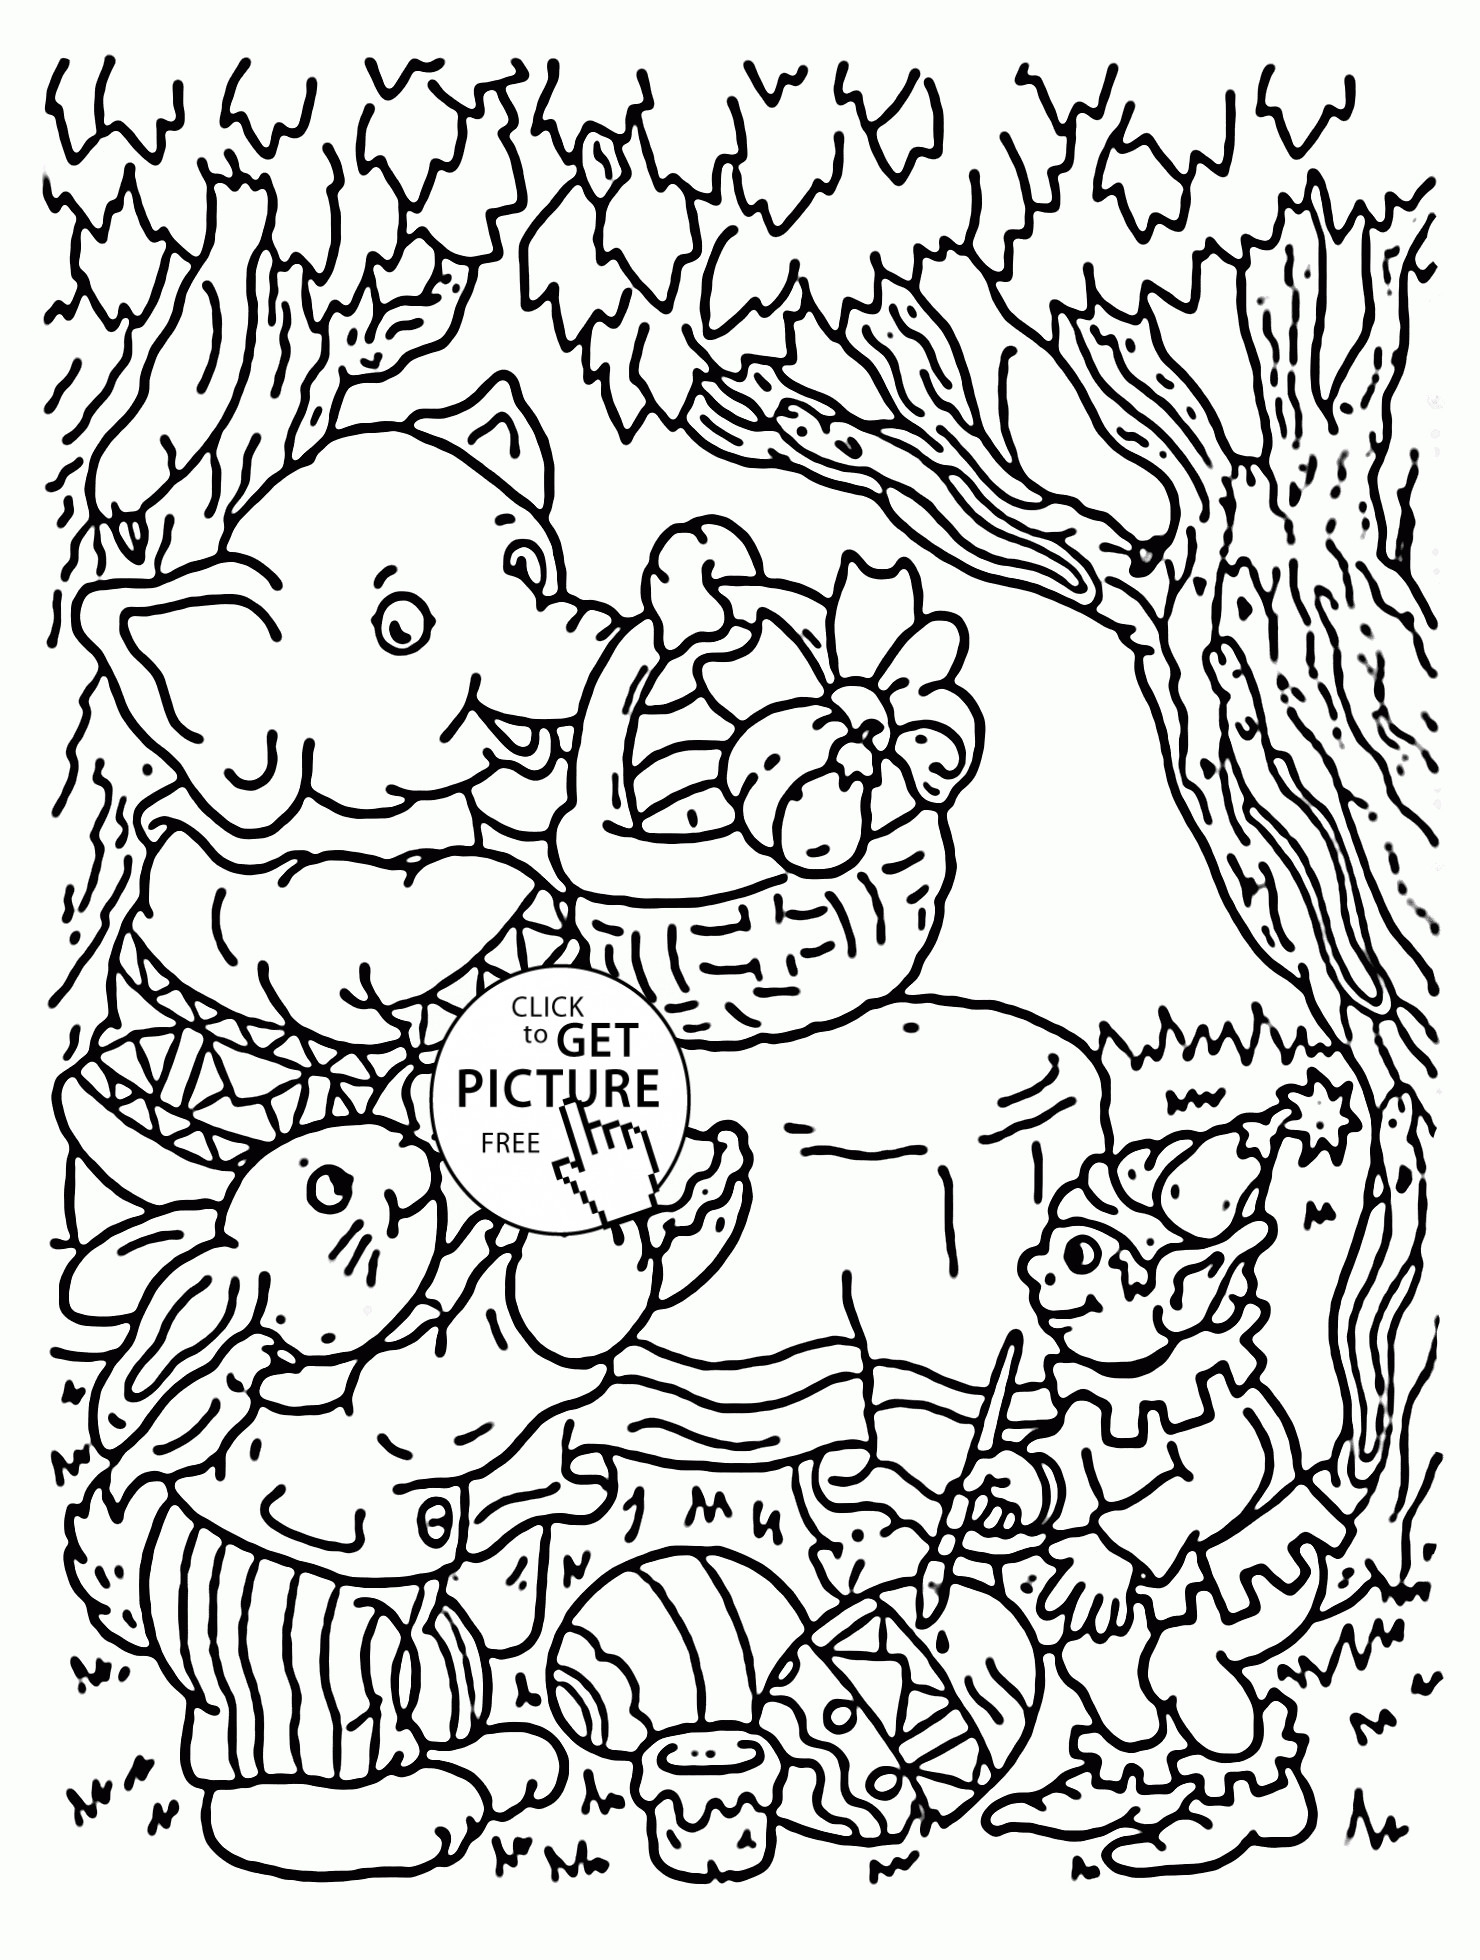 Nina Pinta Santa Maria Coloring Pages With Columbus Page Christopher